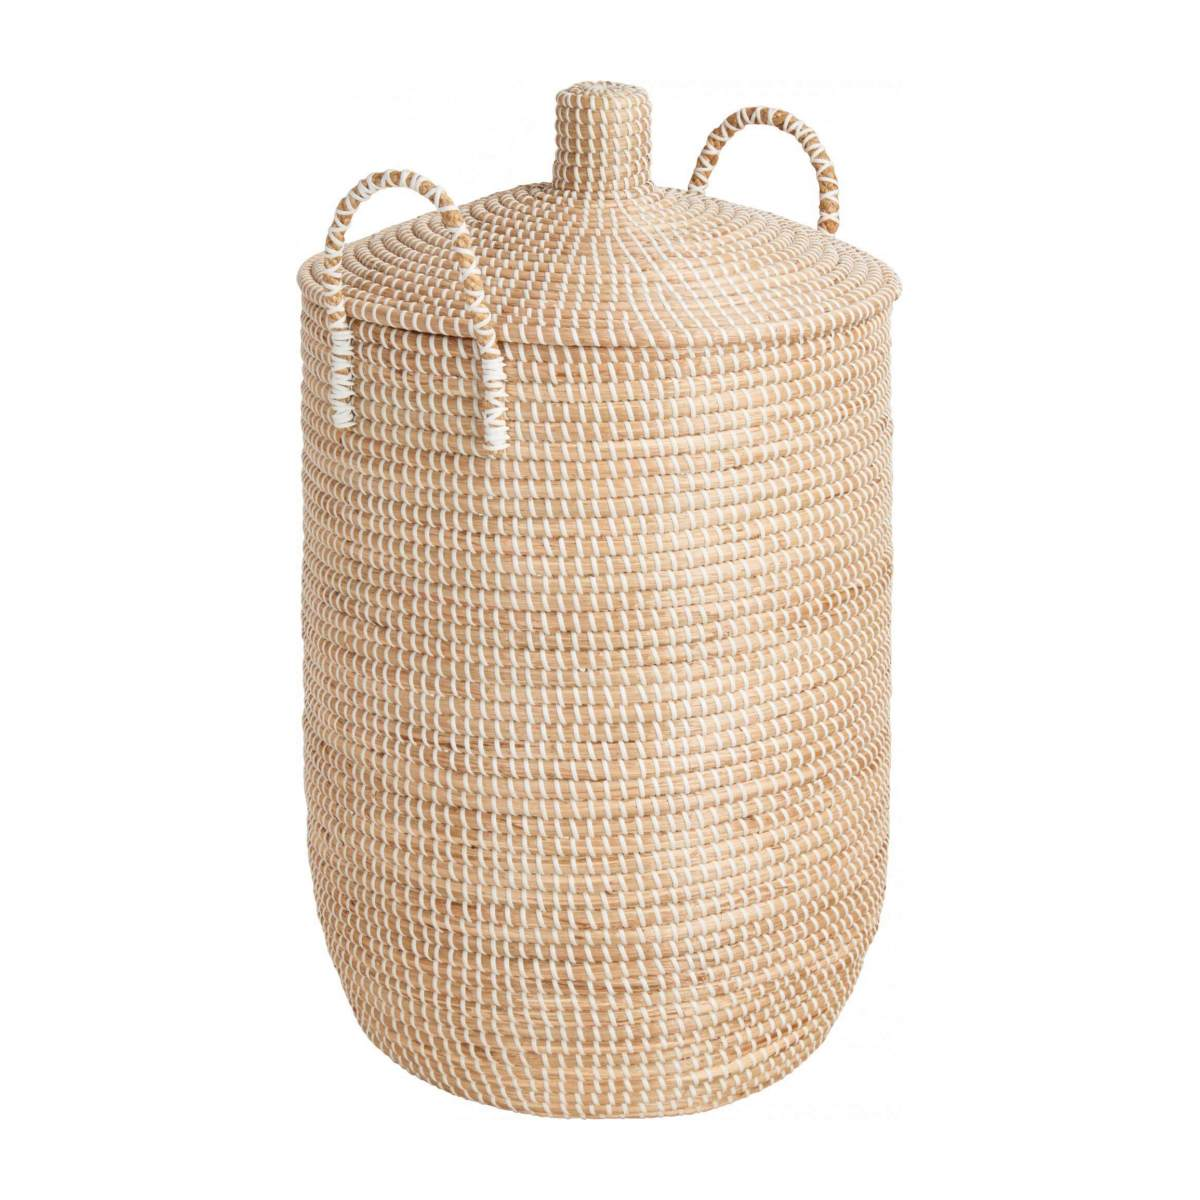 Basket 70cm with cover made of seagrass n°1